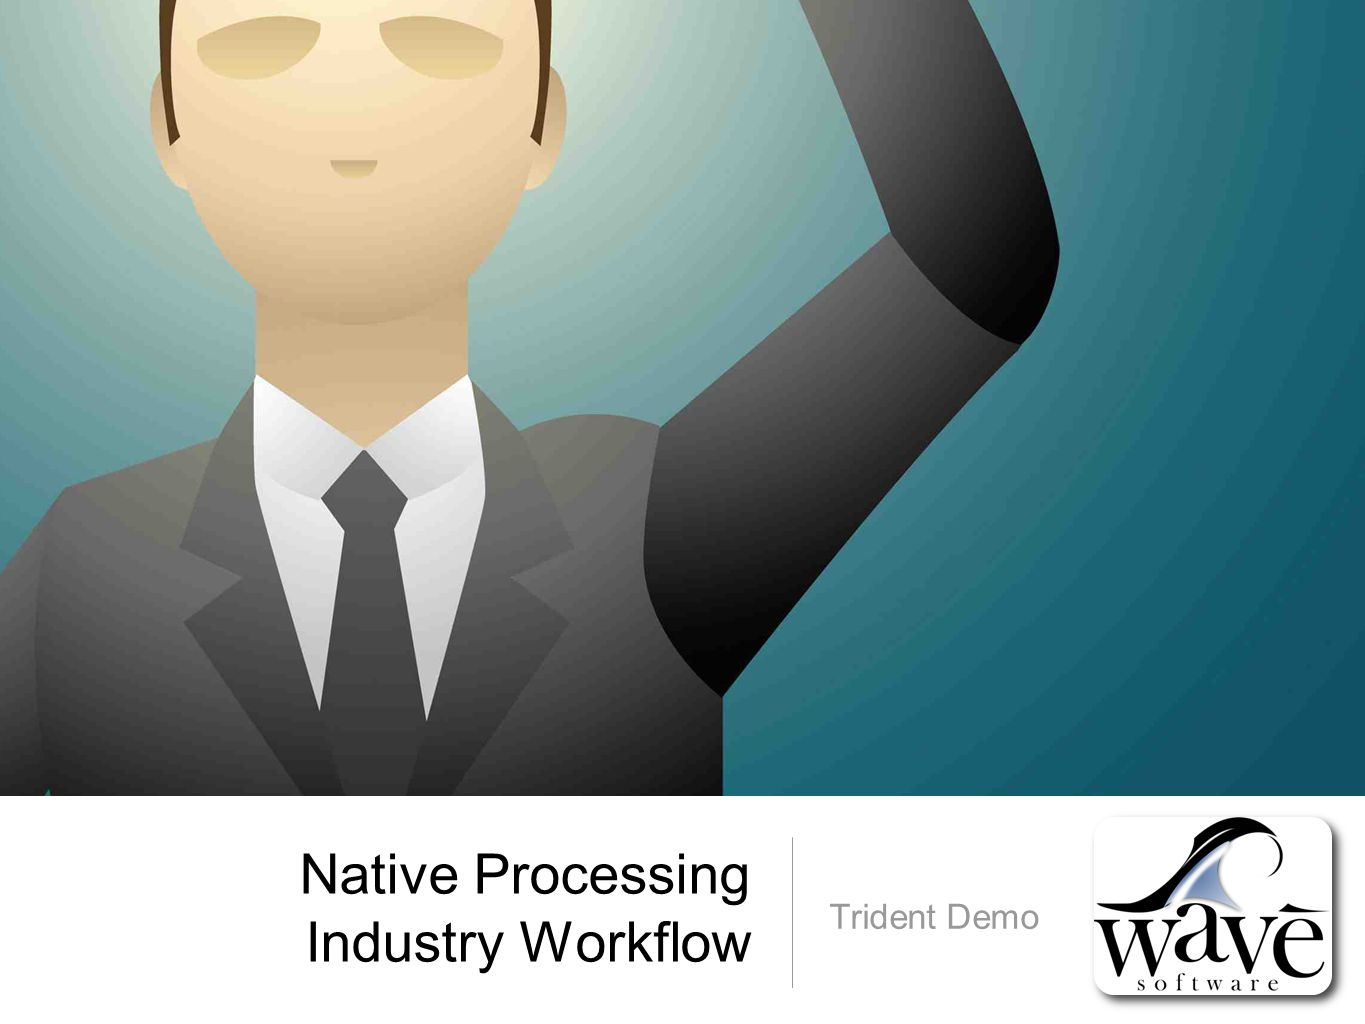 Native Processing Industry Workflow Trident Demo